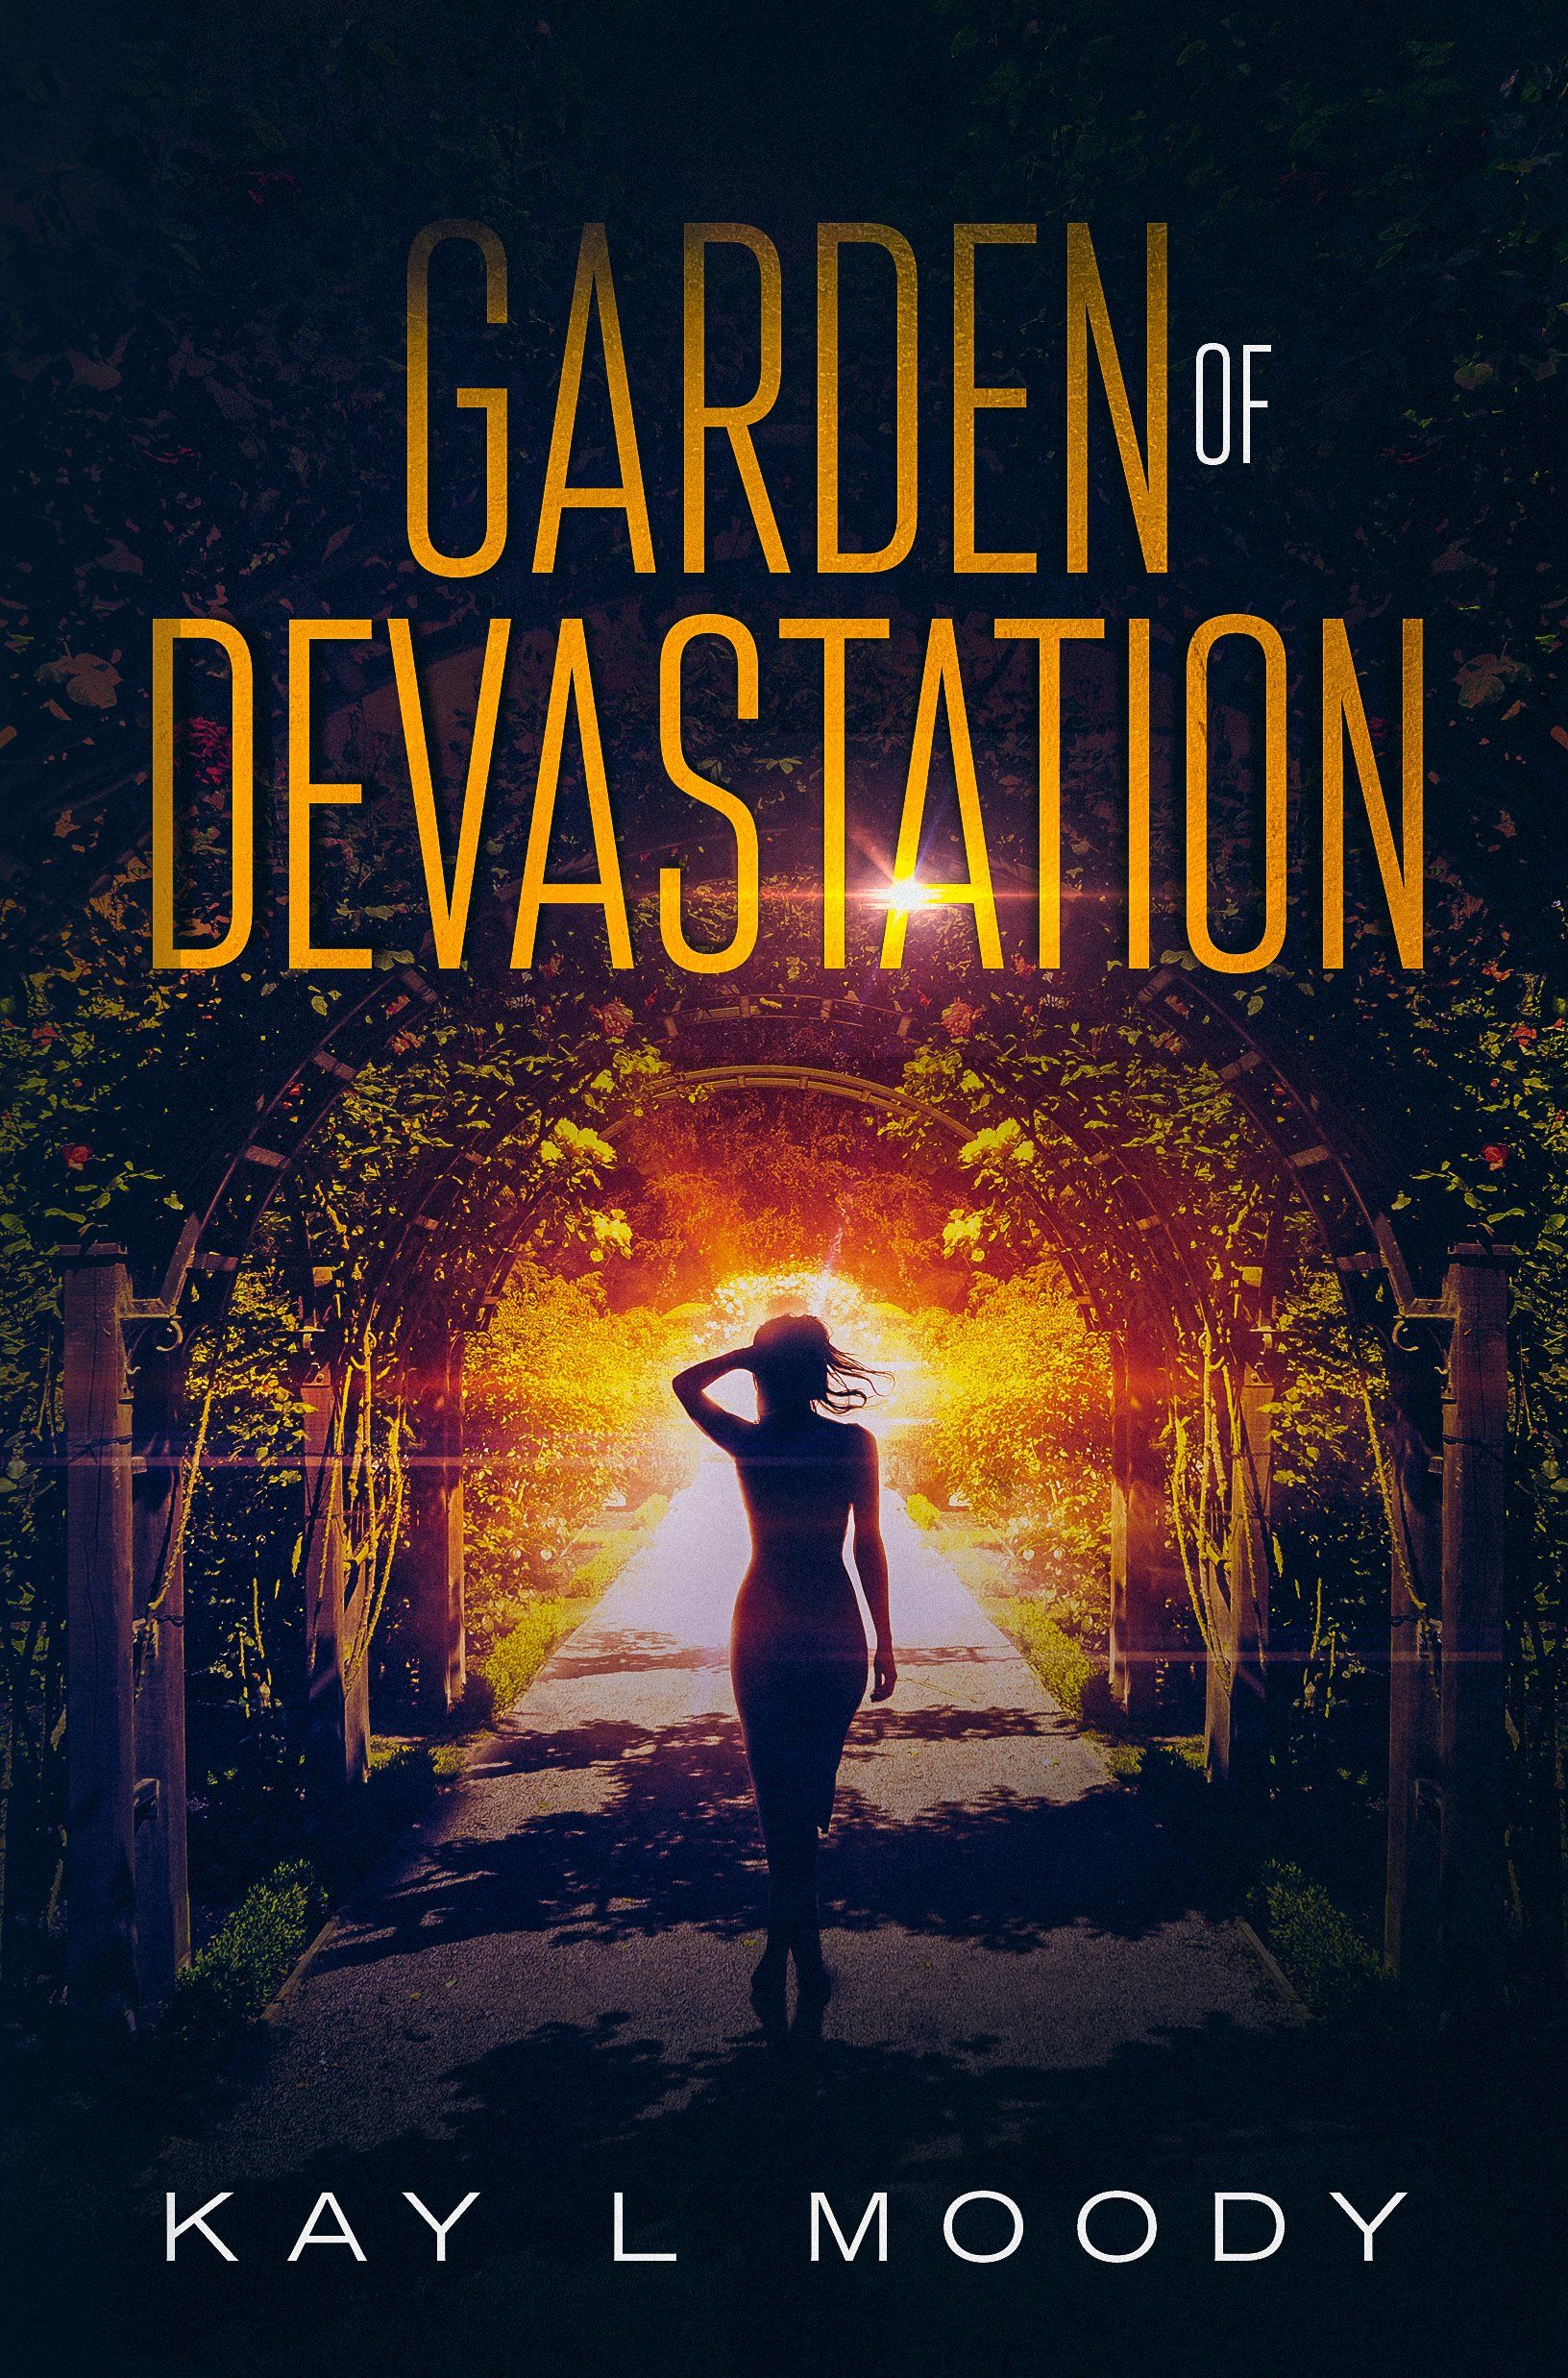 If you like science fiction with a strong female lead and a genetic engineering twist, you'll love Garden of Devastation!